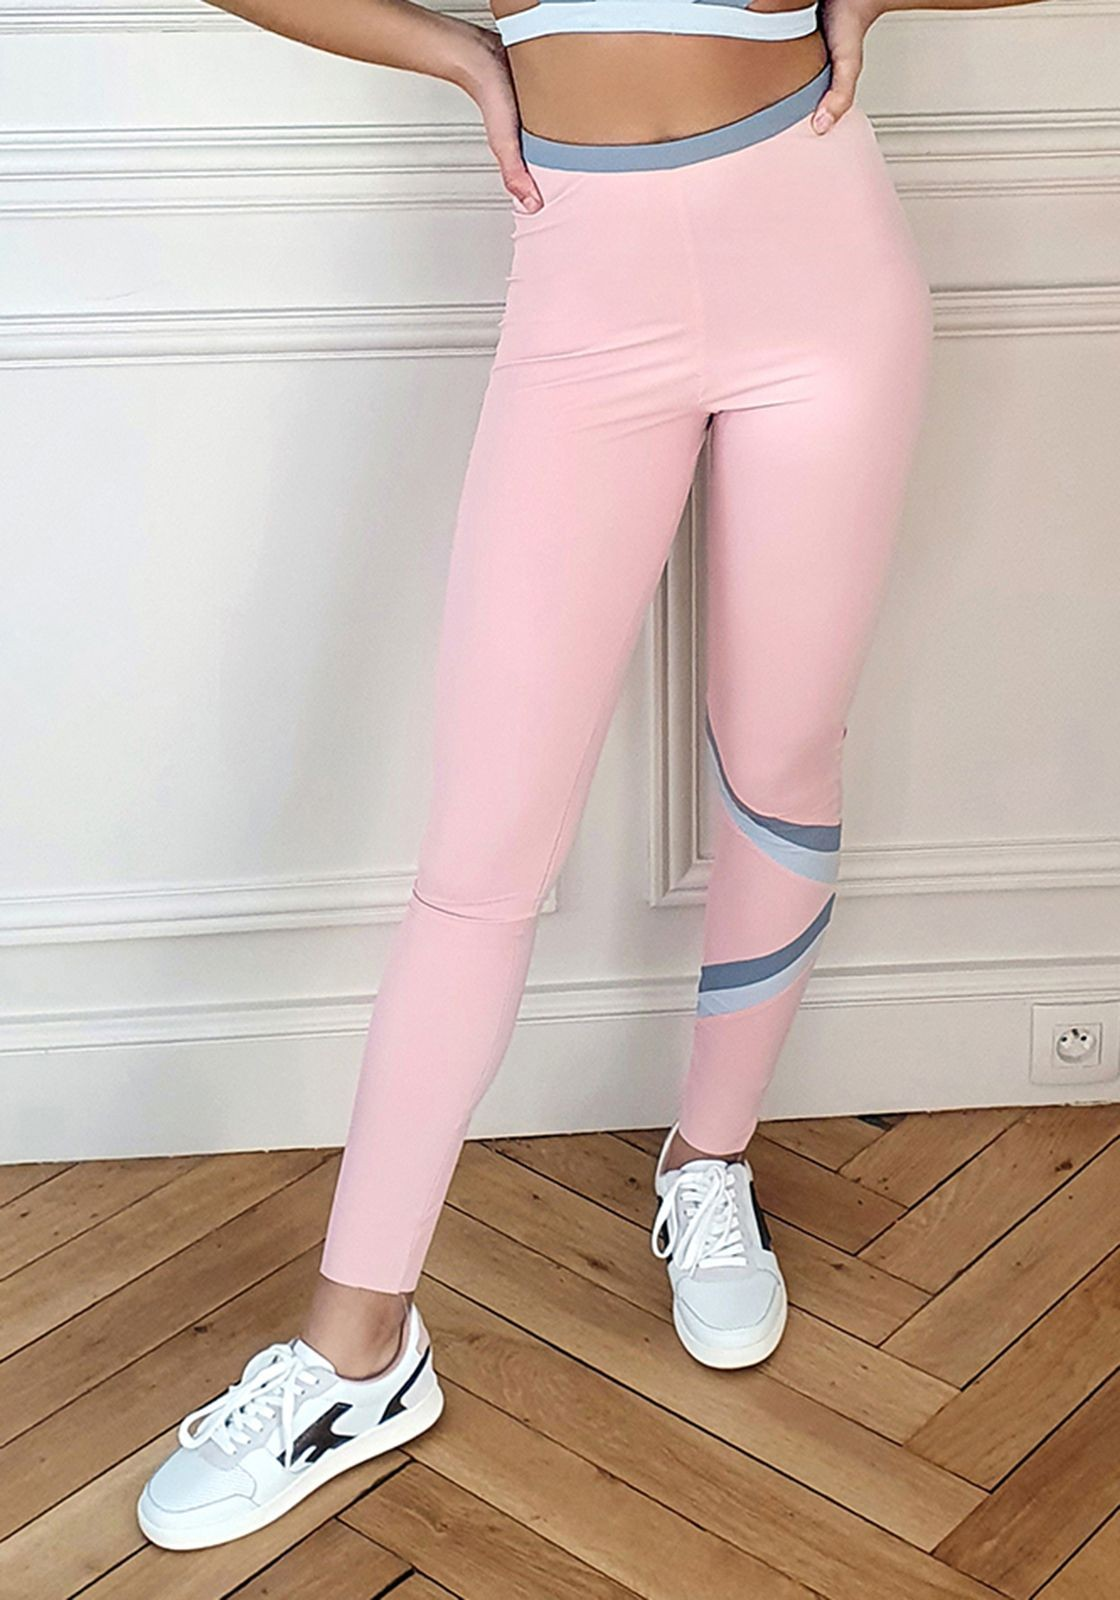 BONNY Pinkwith shades of grey sports legging -  Cloud collection